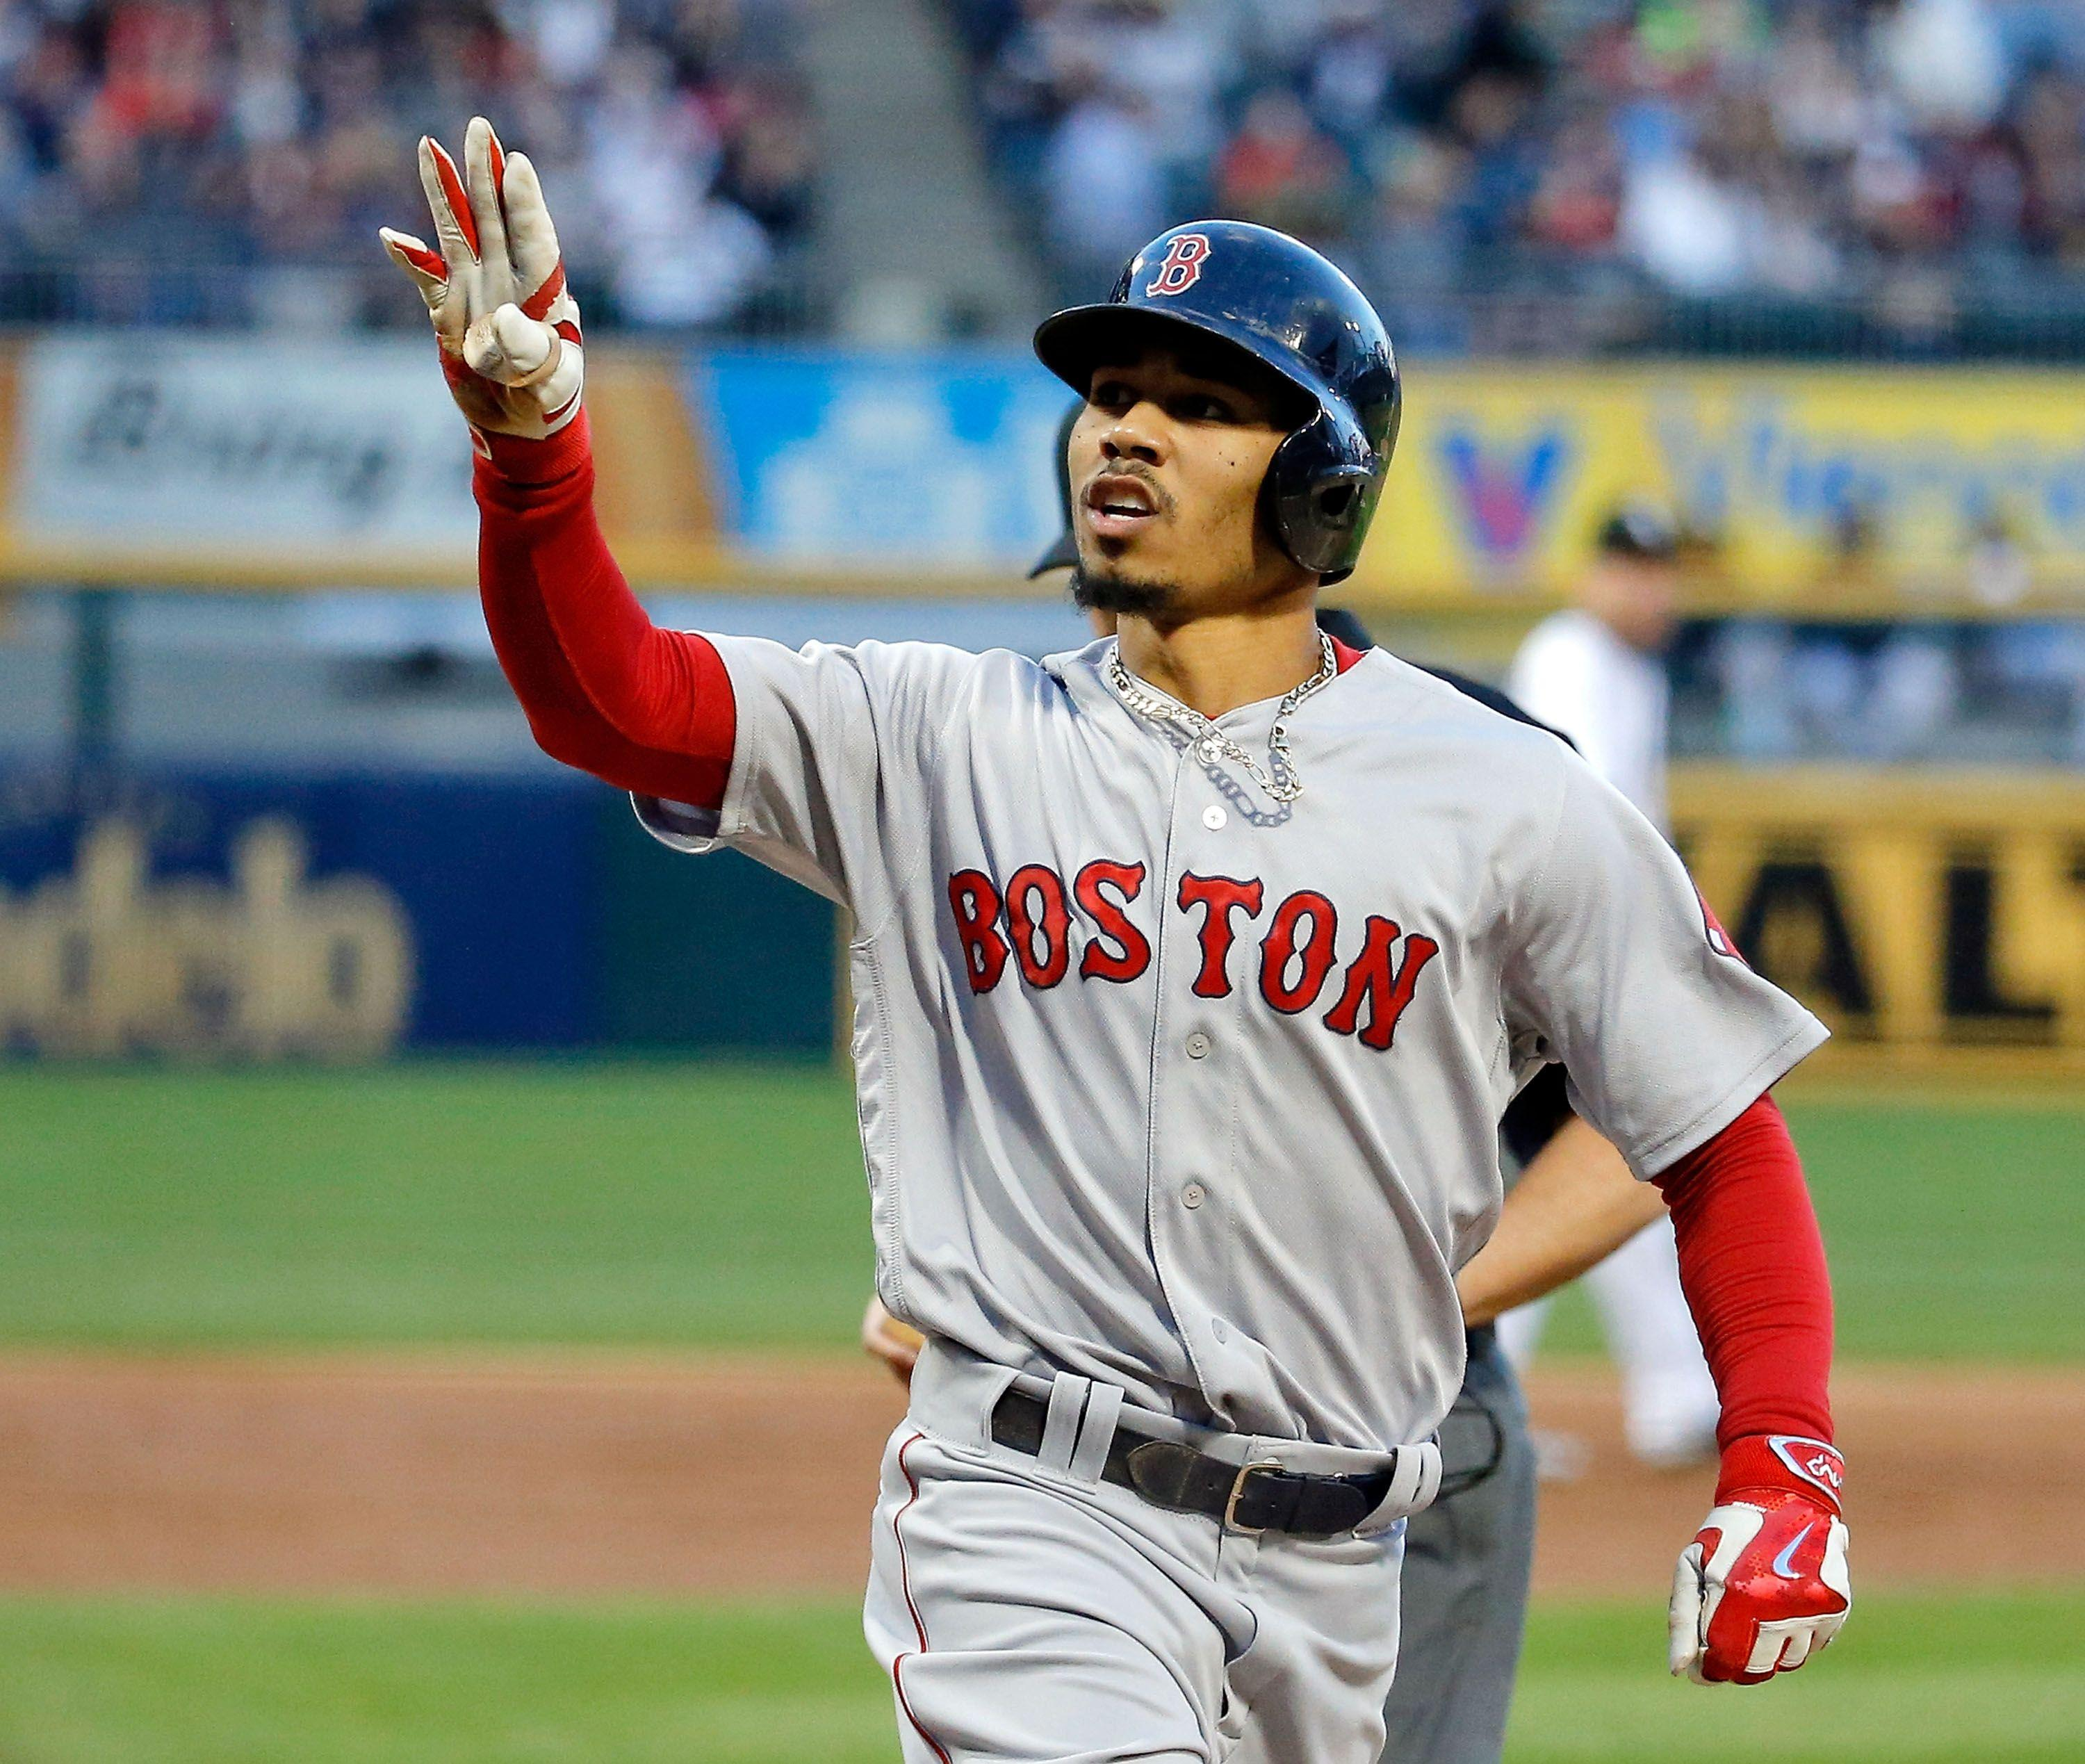 Mookie Betts is about to get hot